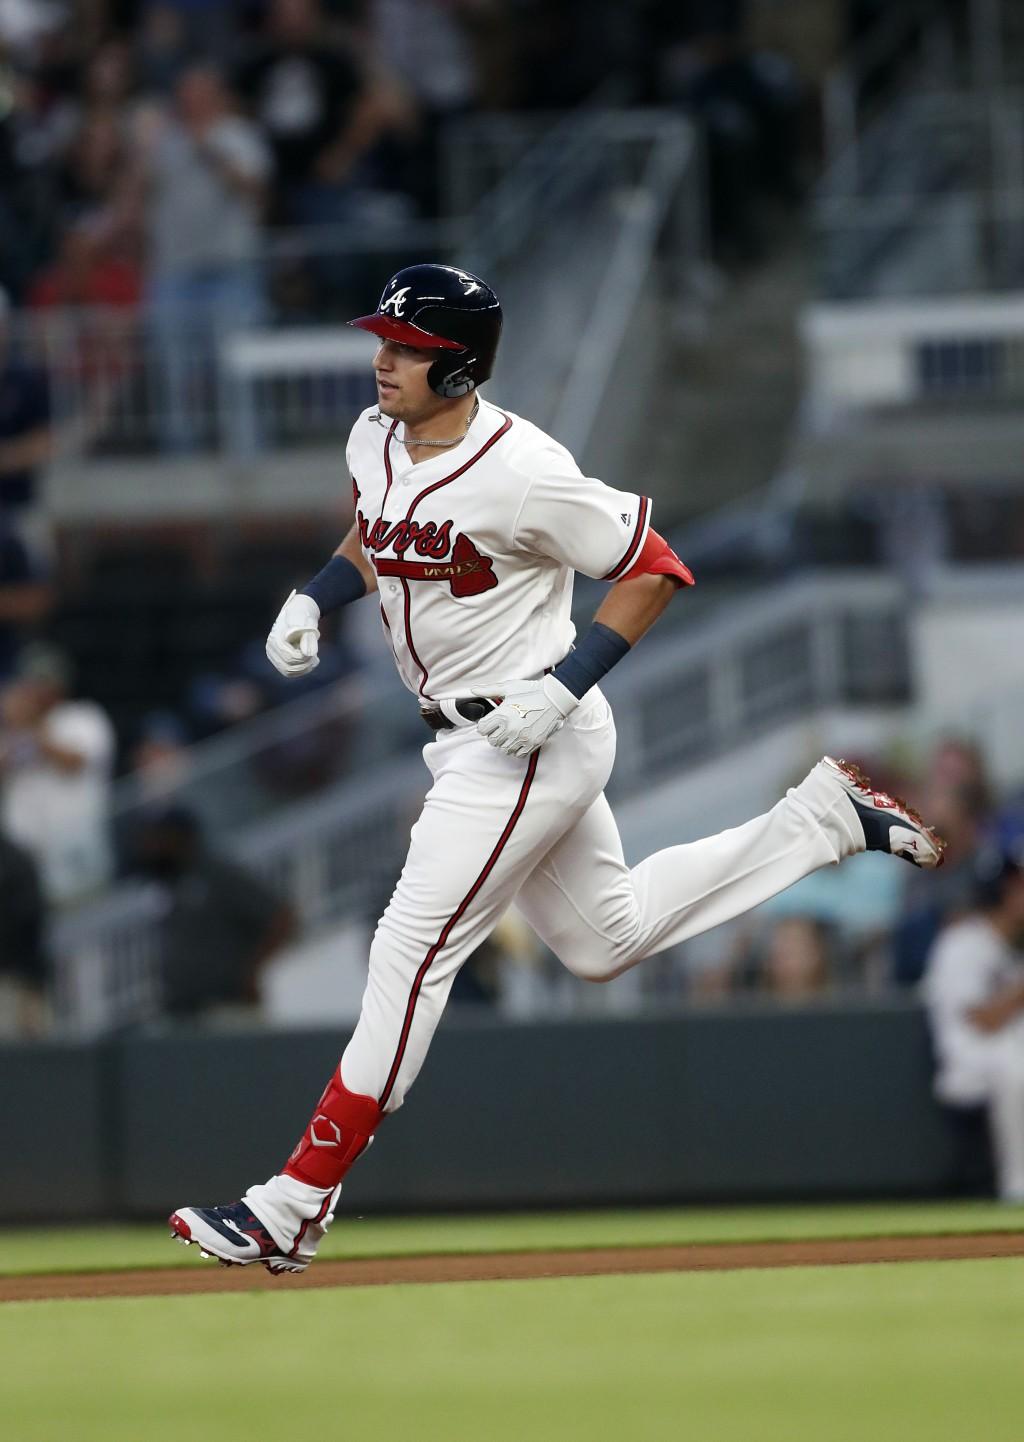 Atlanta Braves' rookie Austin Riley rounds the bases after hitting a home run in the fourth inning of a baseball game against the St. Louis Cardinals